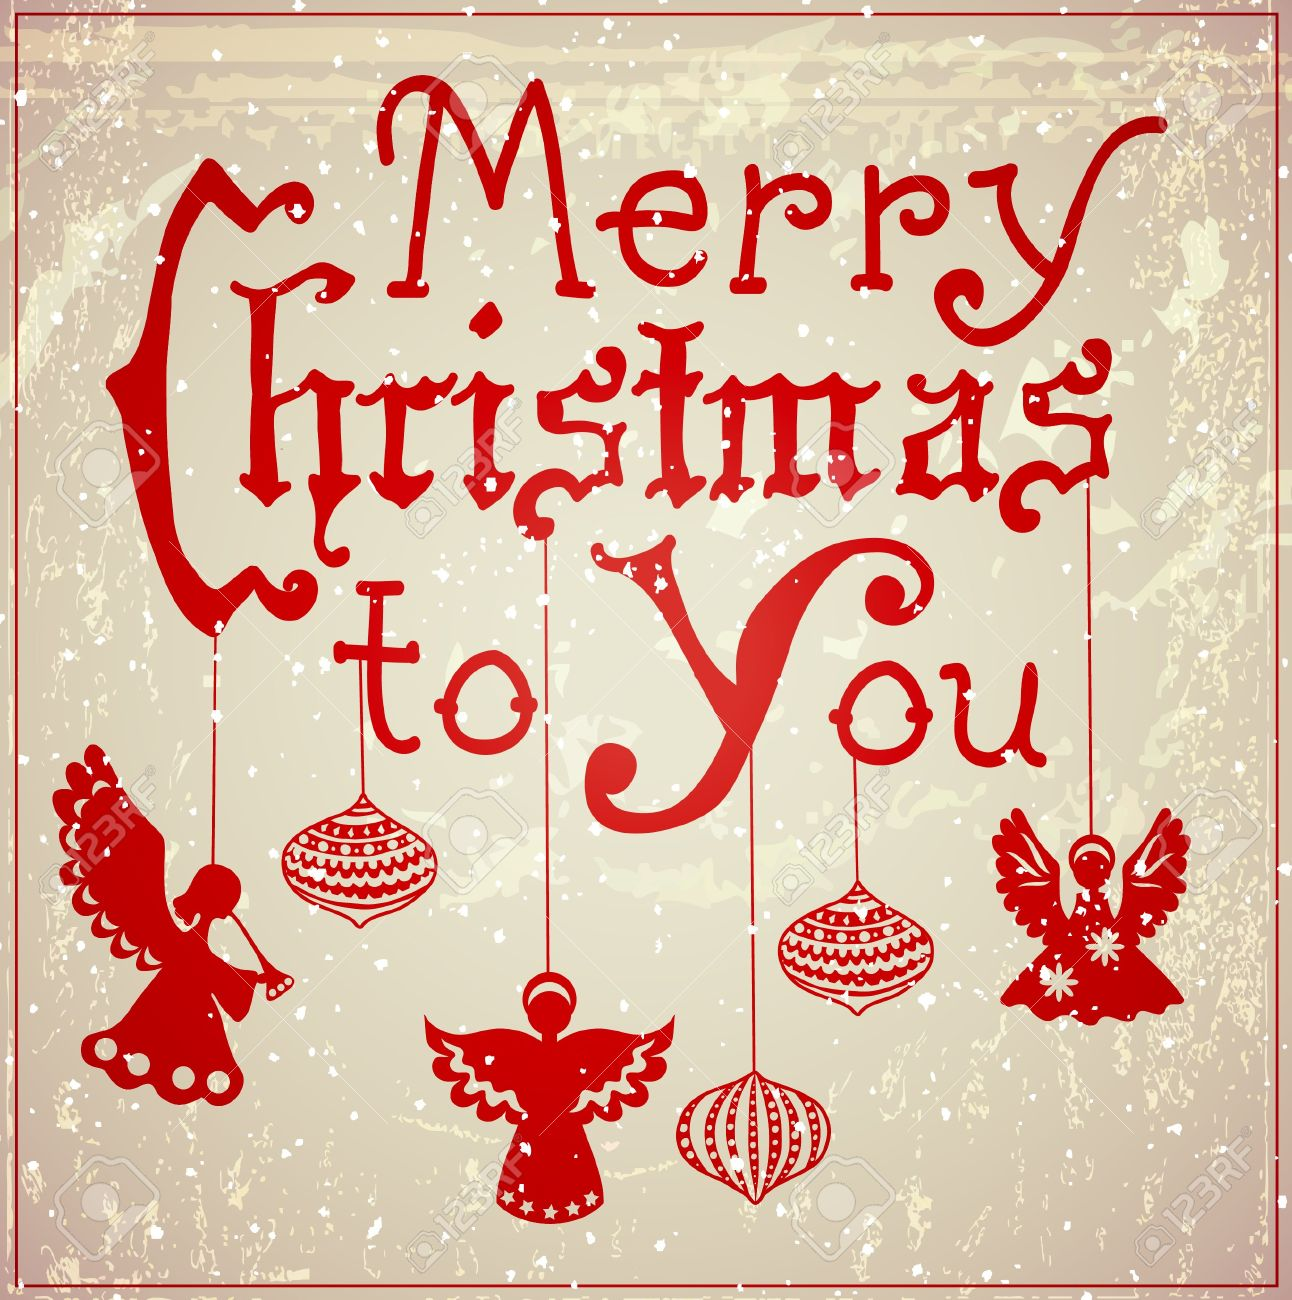 Merry Christmas Words Photos Images Royalty Free Merry – Words for Christmas Card